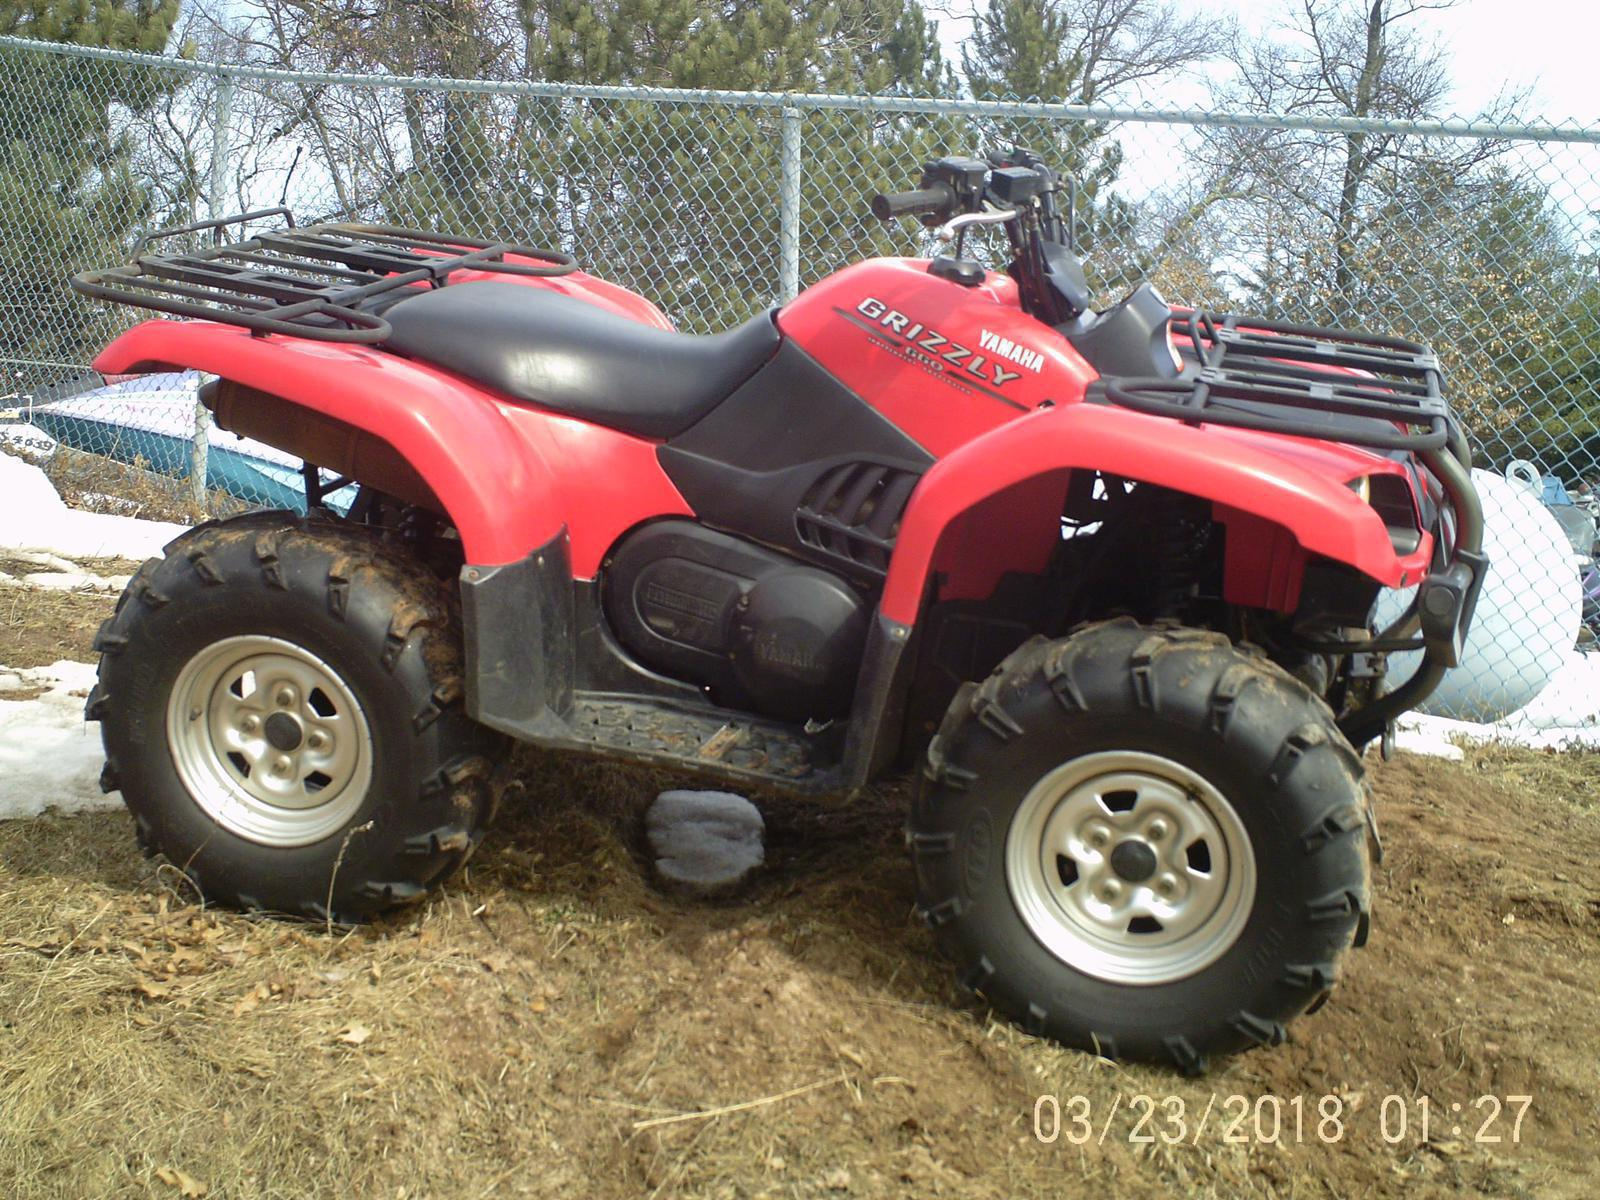 Yamaha Grizzly 660 >> 2005 Yamaha Grizzly 660 Sold For Sale In Webb Lake Wi Four